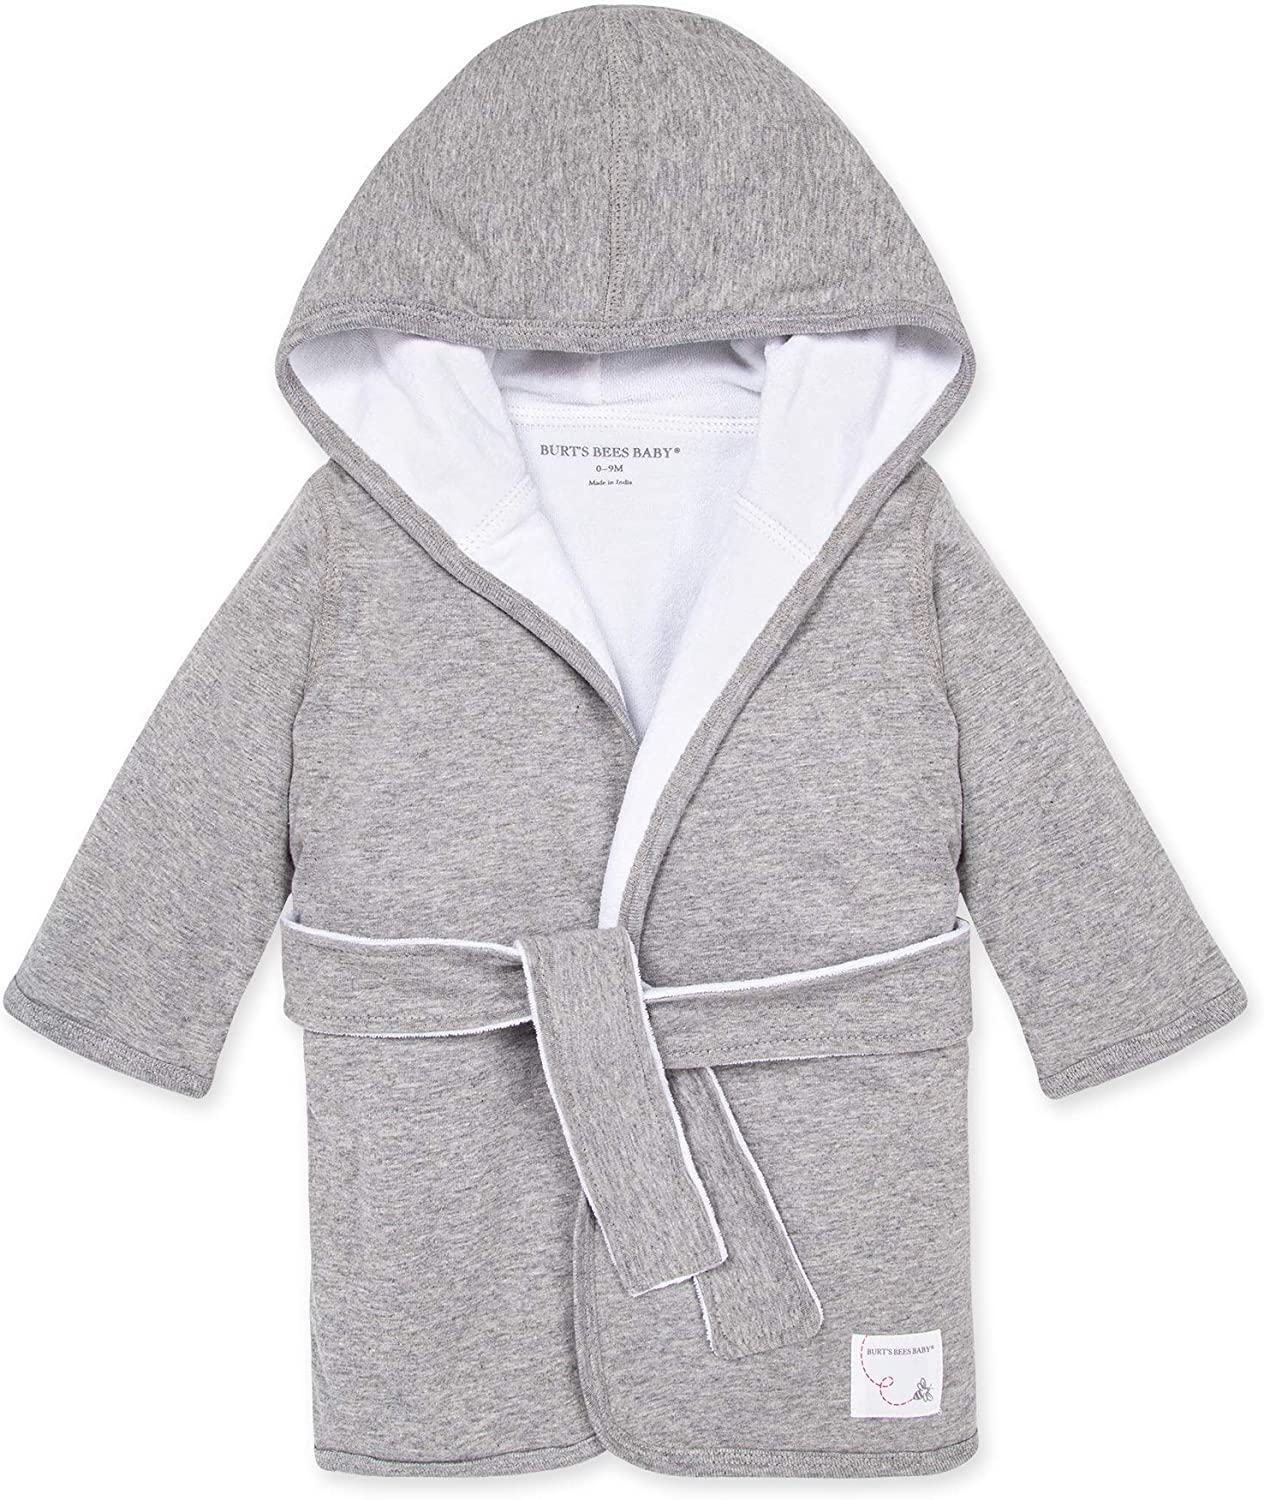 Burt's Bees Baby baby-girls Bathrobe, Infant Hooded Robe, Absorbent Knit Terry, 100% Organic Cotton, 0-9 Months